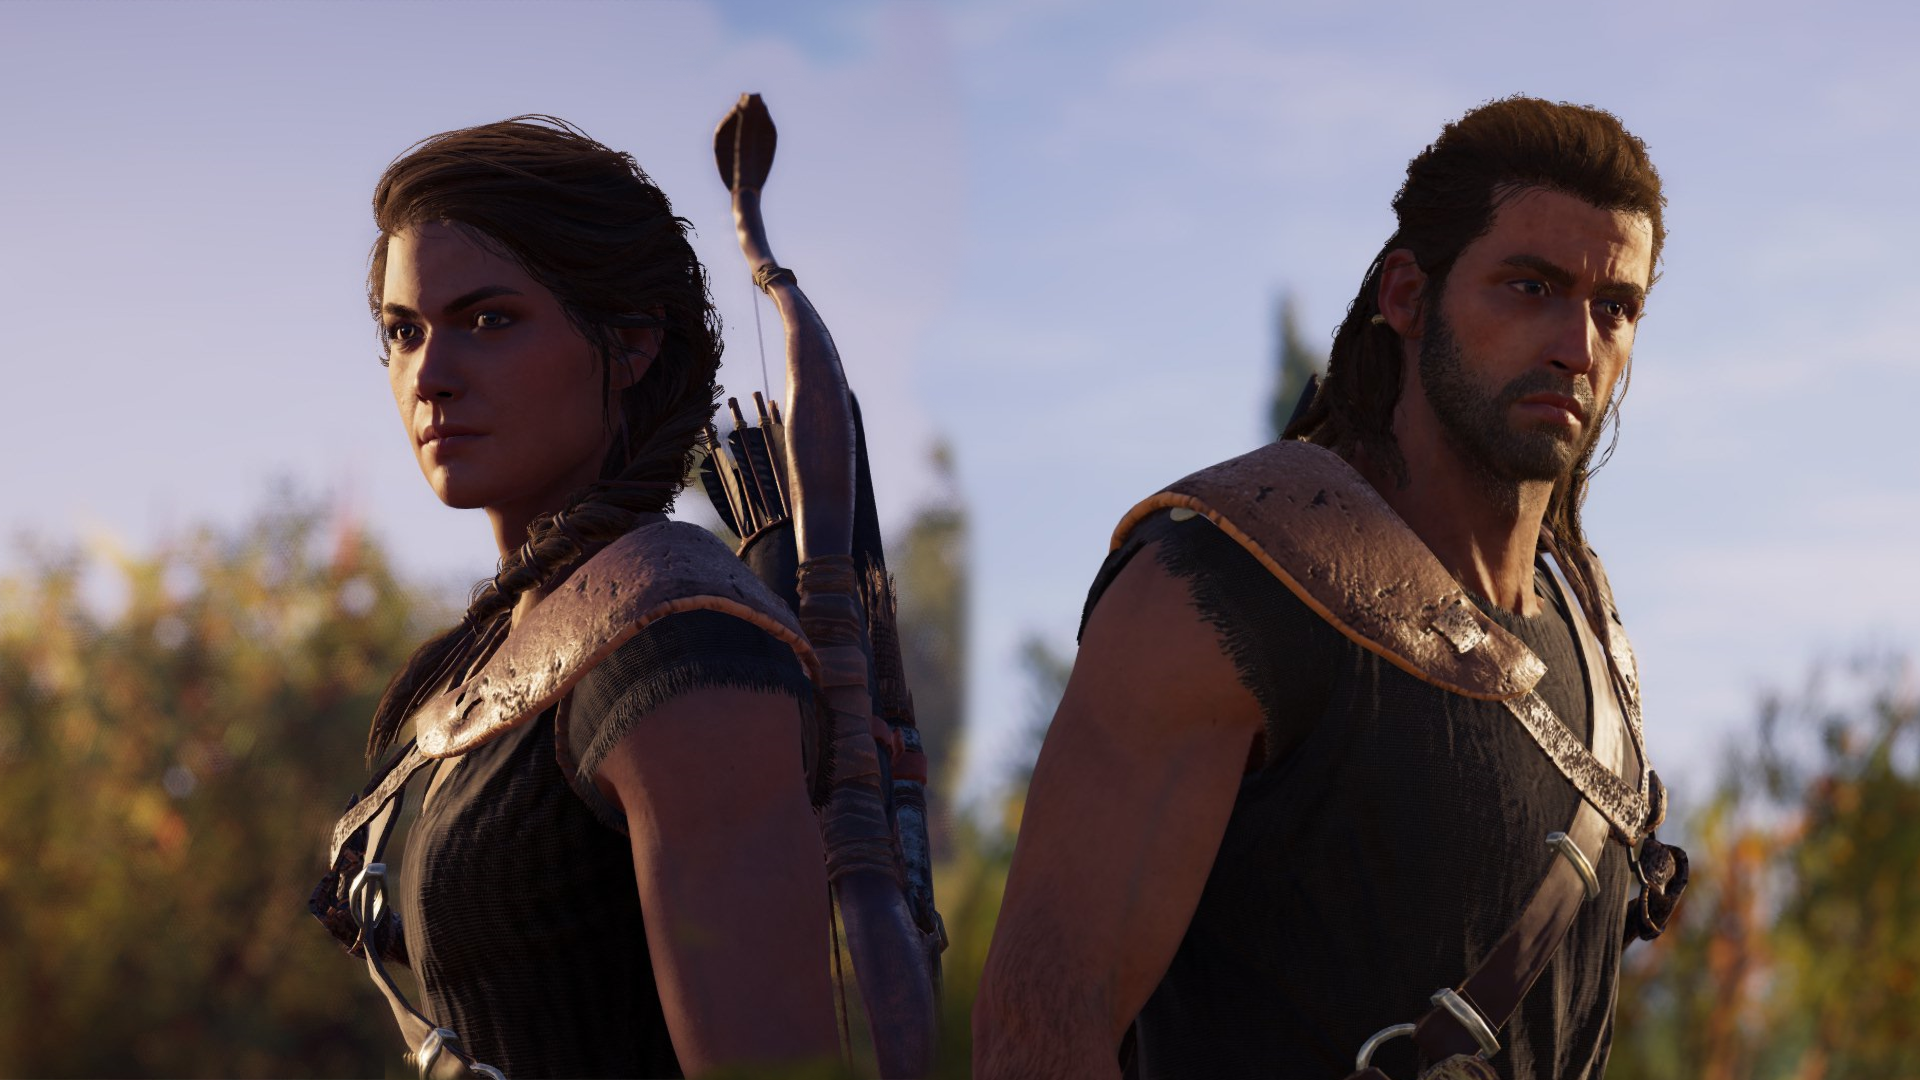 Assassins Creed Odessey Kassandra And Alexios By Rk89k On Deviantart